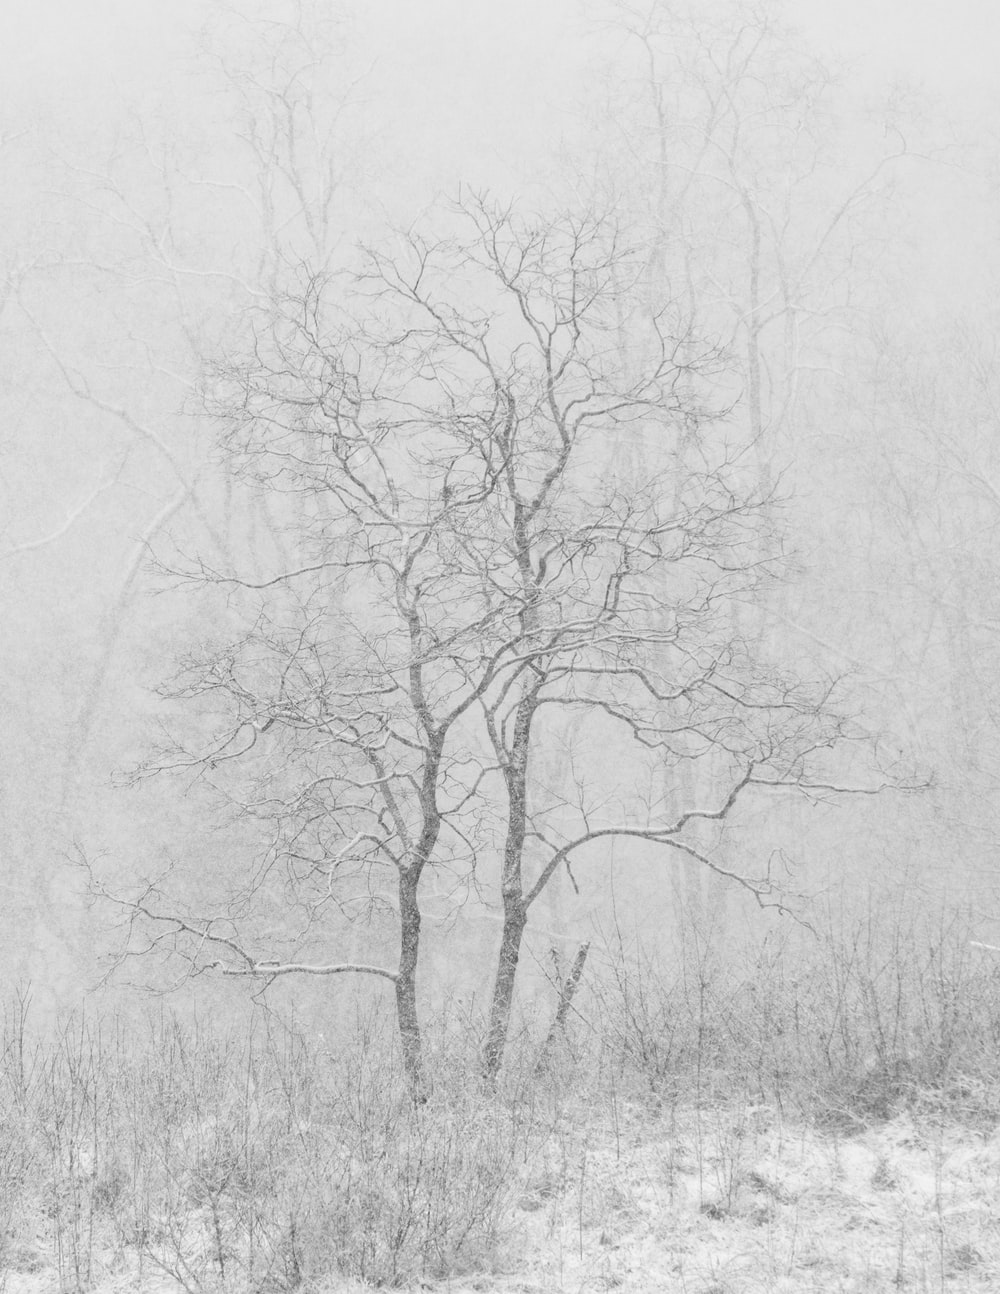 snow covered tree at daytime